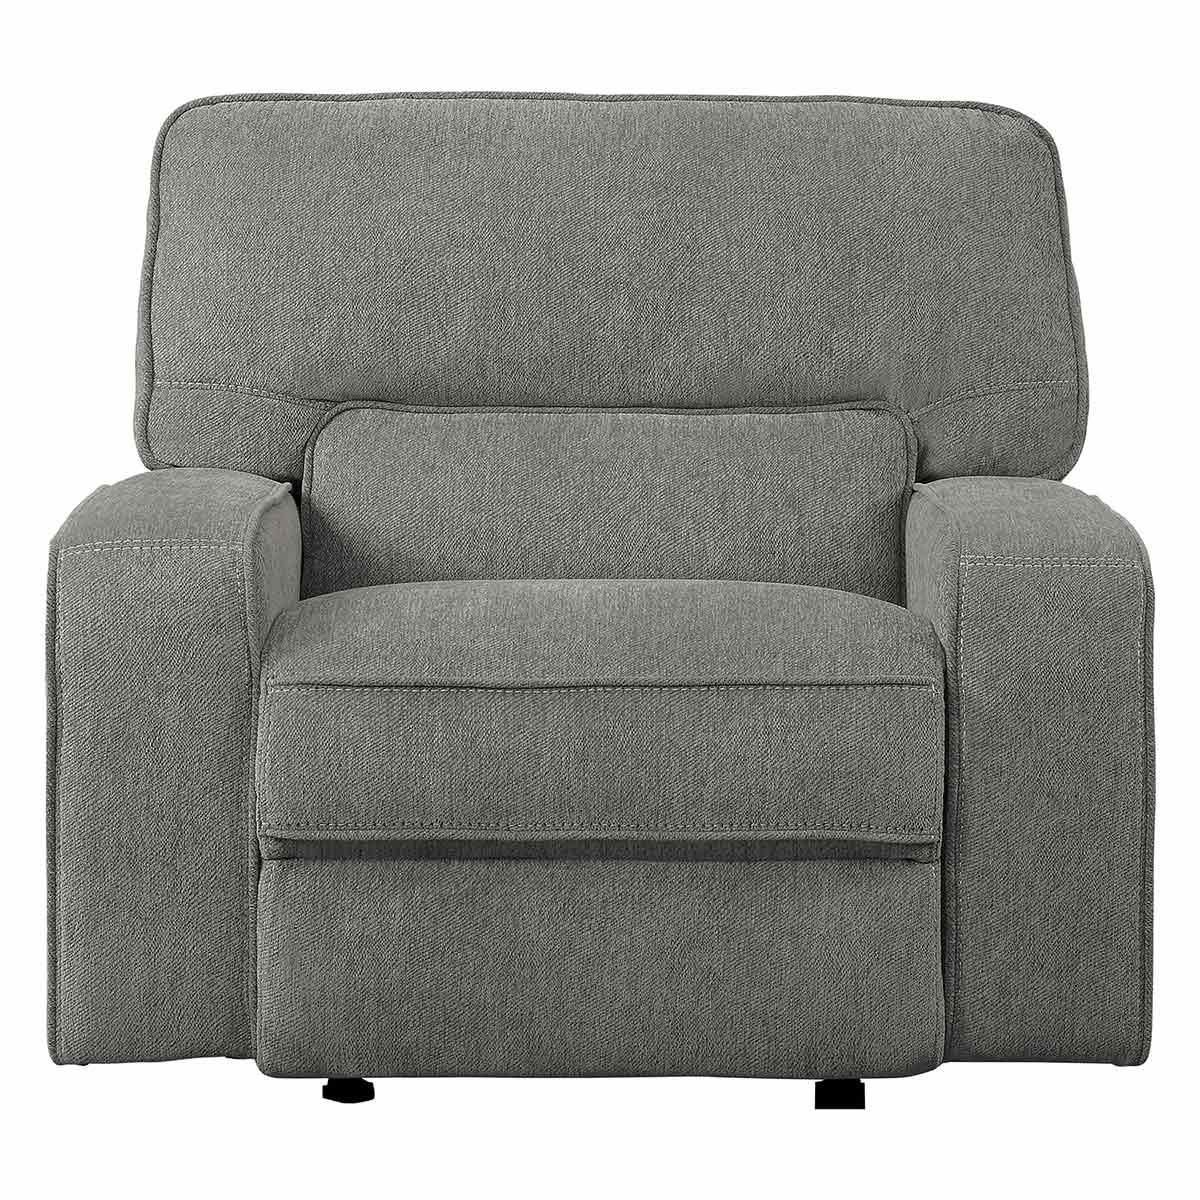 Homelegance Borneo Power Reclining Chair with Power Headrest - Mocha